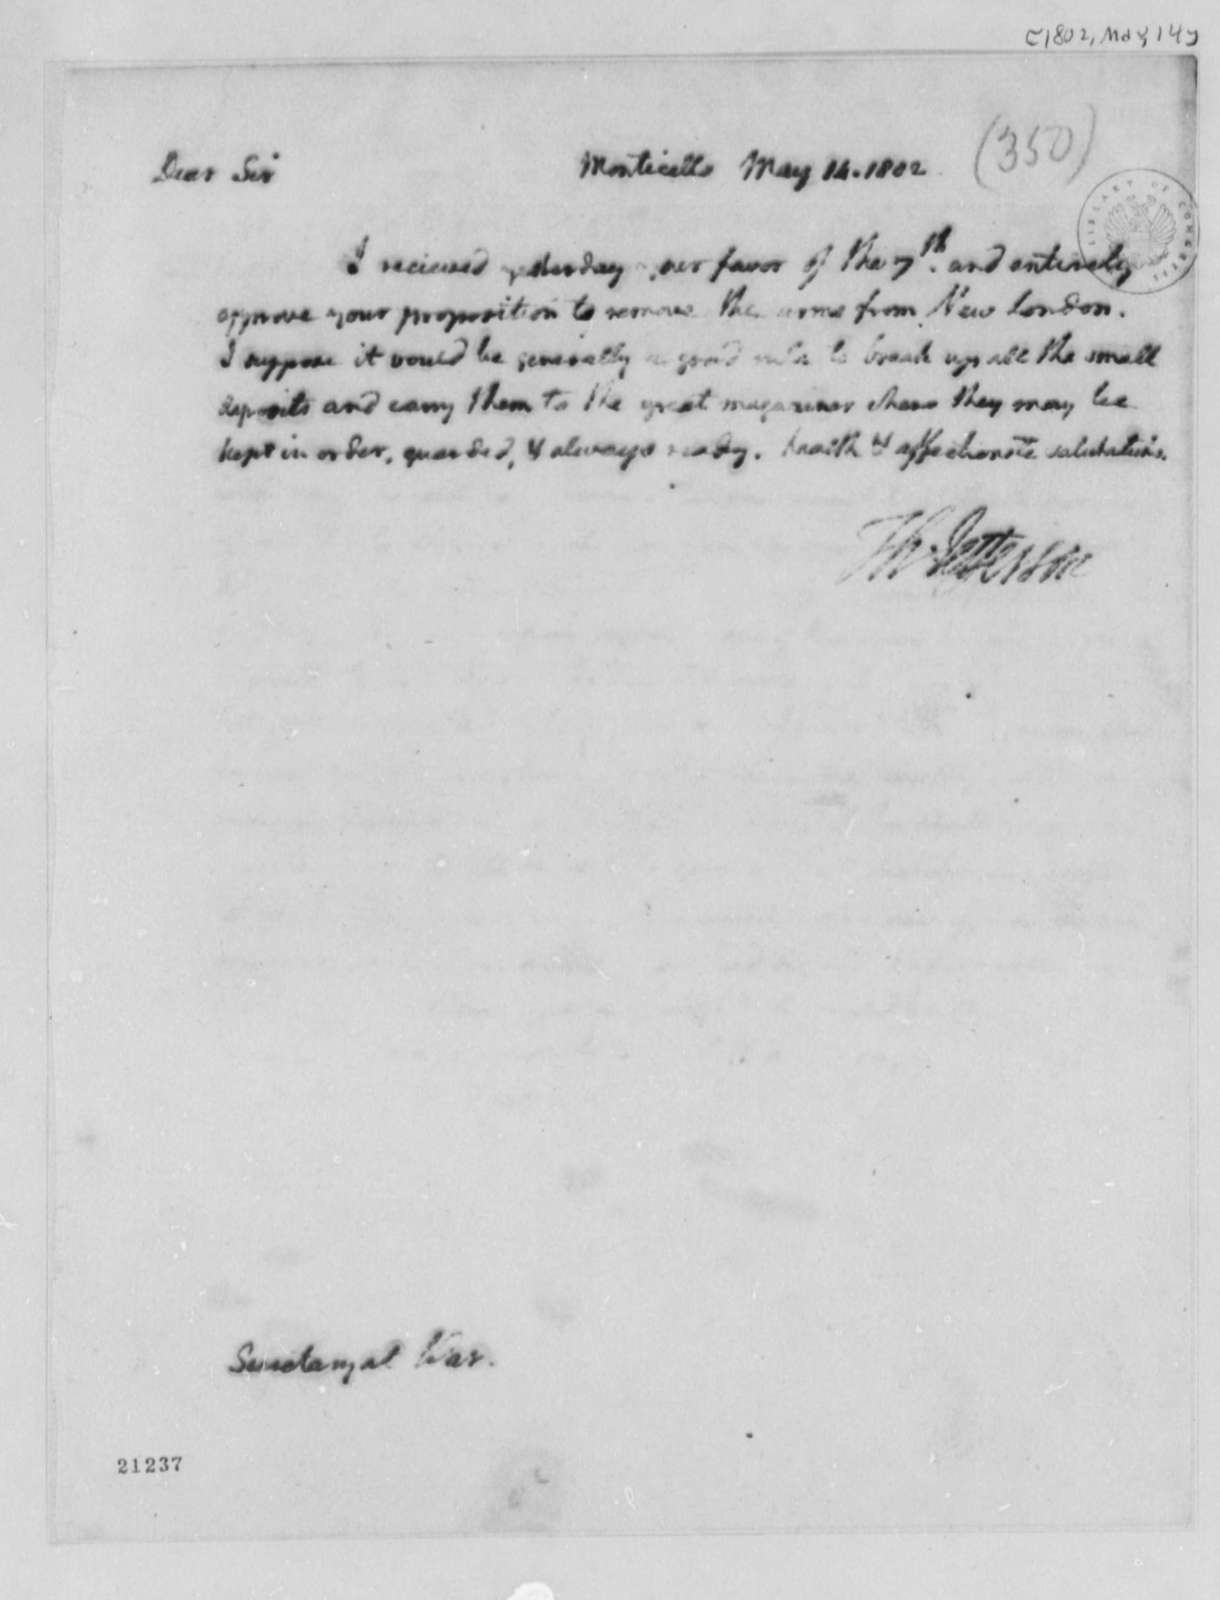 Thomas Jefferson to Henry Dearborn, May 14, 1802